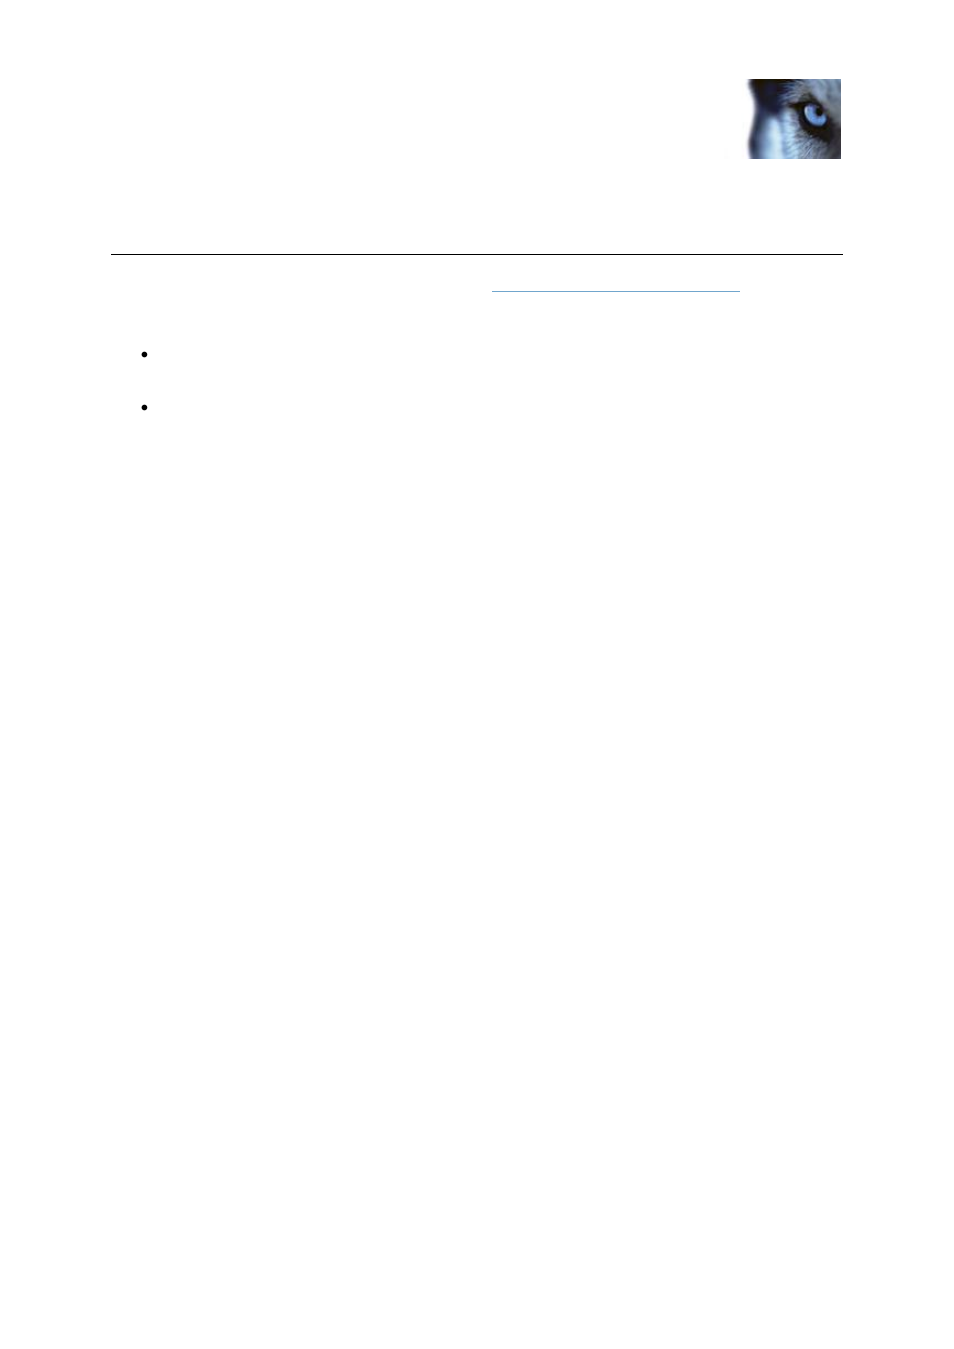 install xprotect lpr e 10 milestone lpr 10 user manual page 10 47